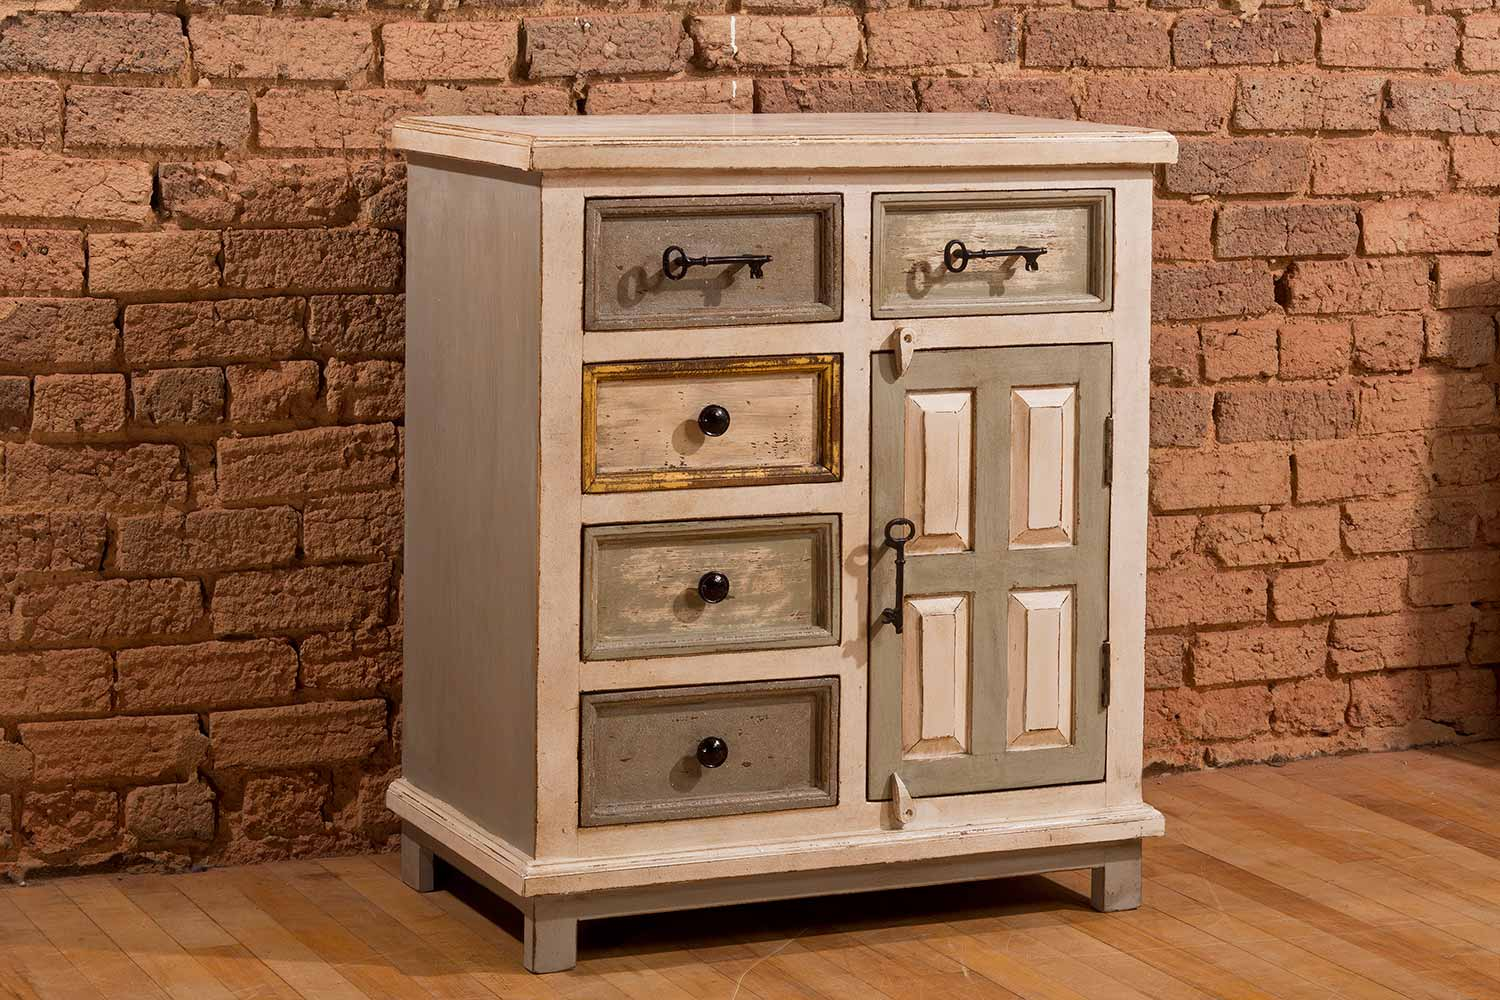 Hillsdale LaRose Five Drawer One Door Cabinet - Dove Gray/Antique White